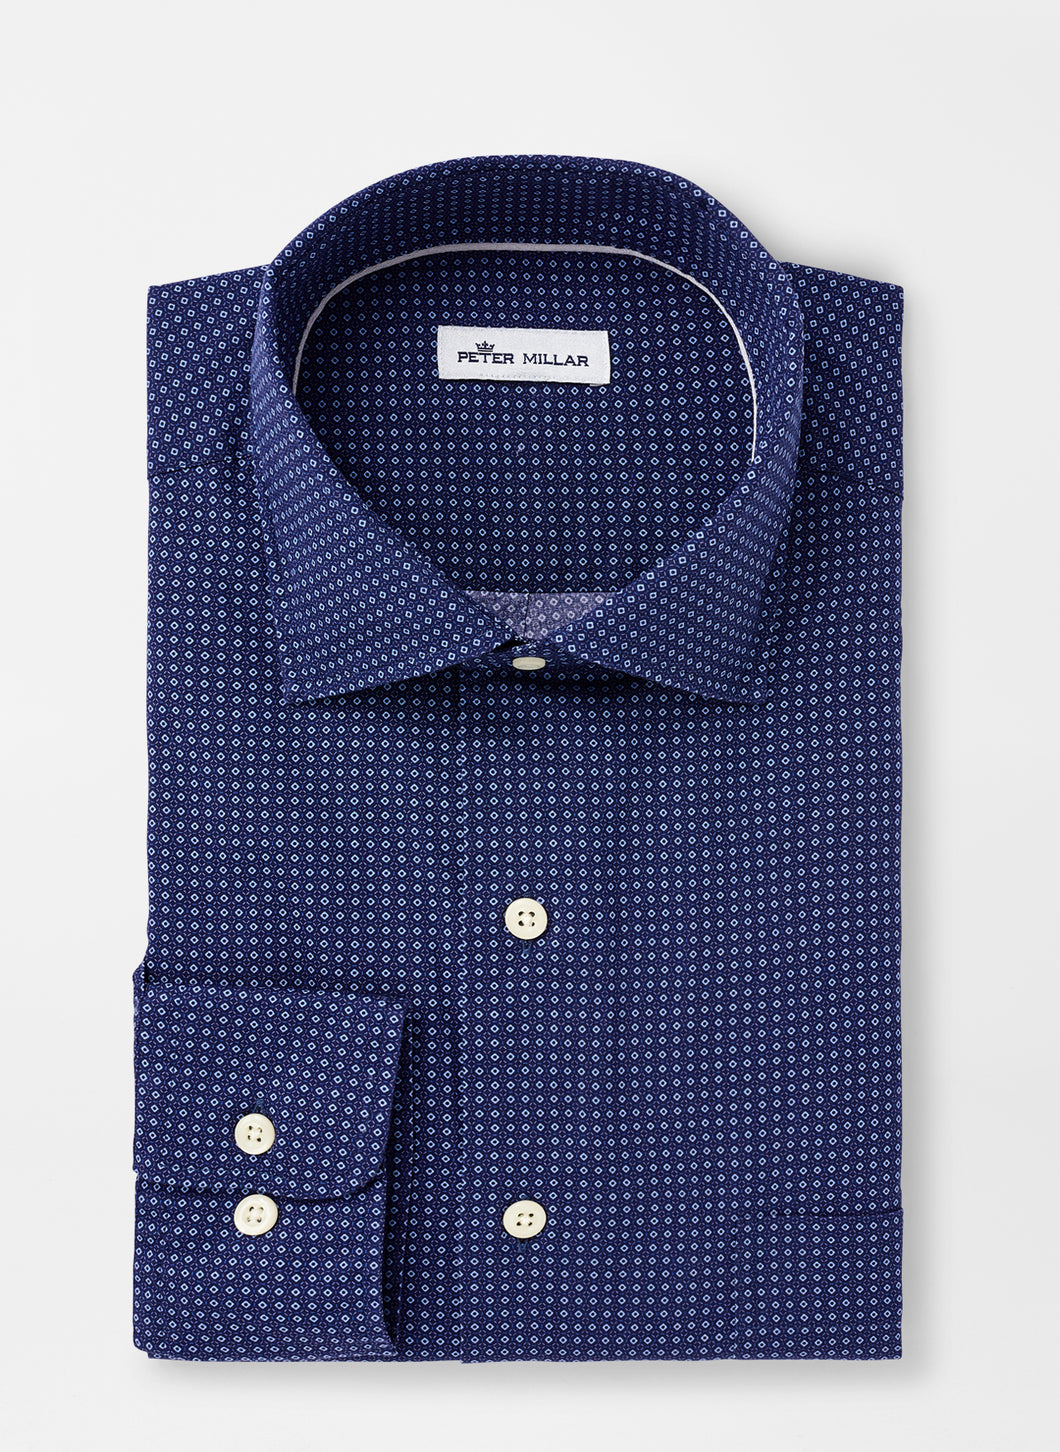 Peter Millar Block Island Cotton-Blend Sport Shirt in Navy